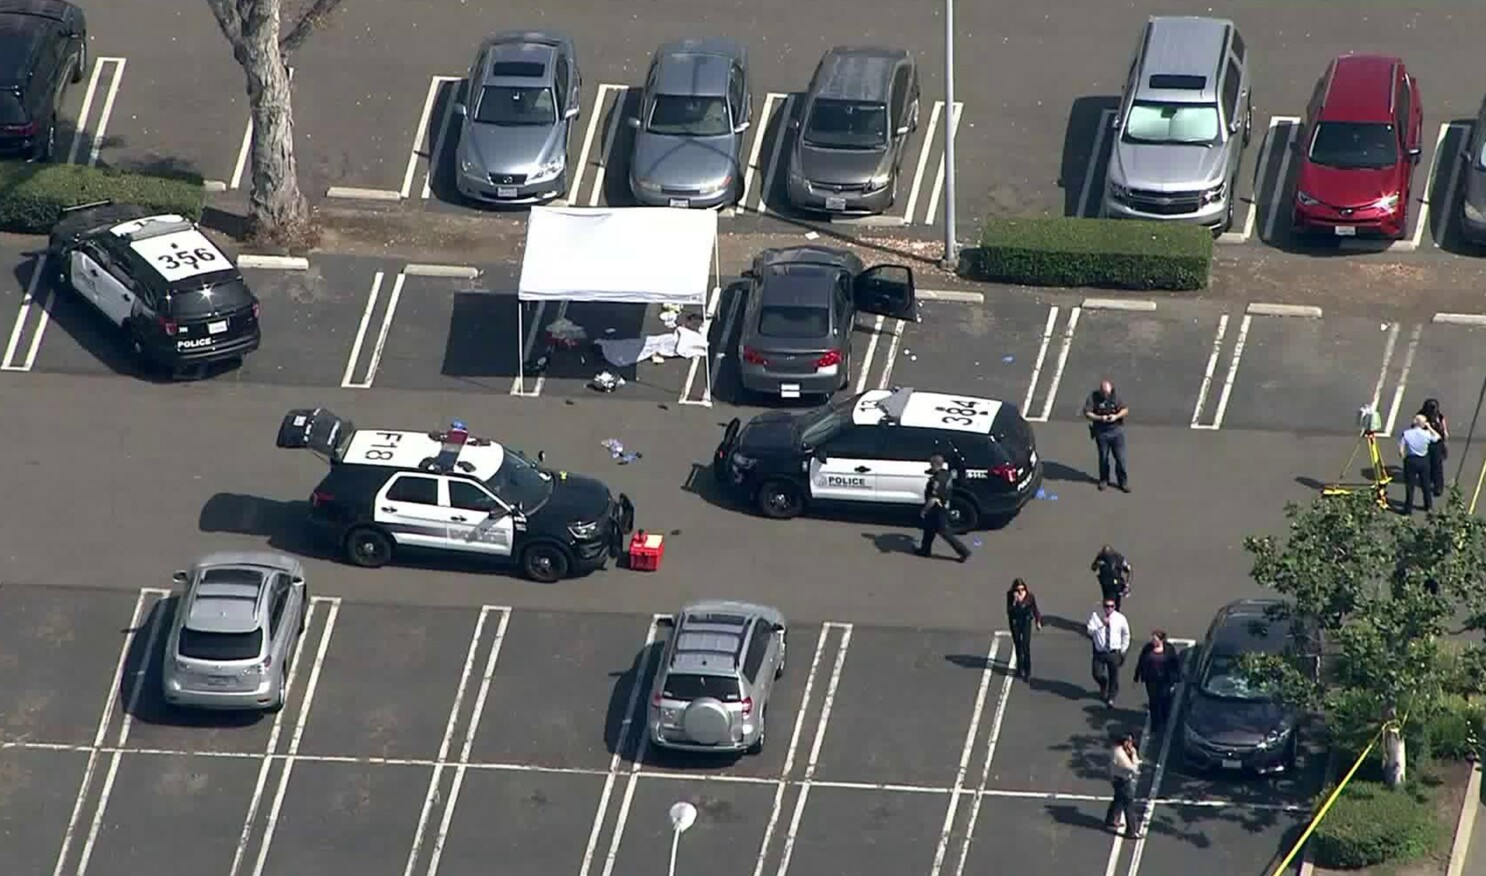 Cal State Fullerton faculty member killed on campus; suspect still at large